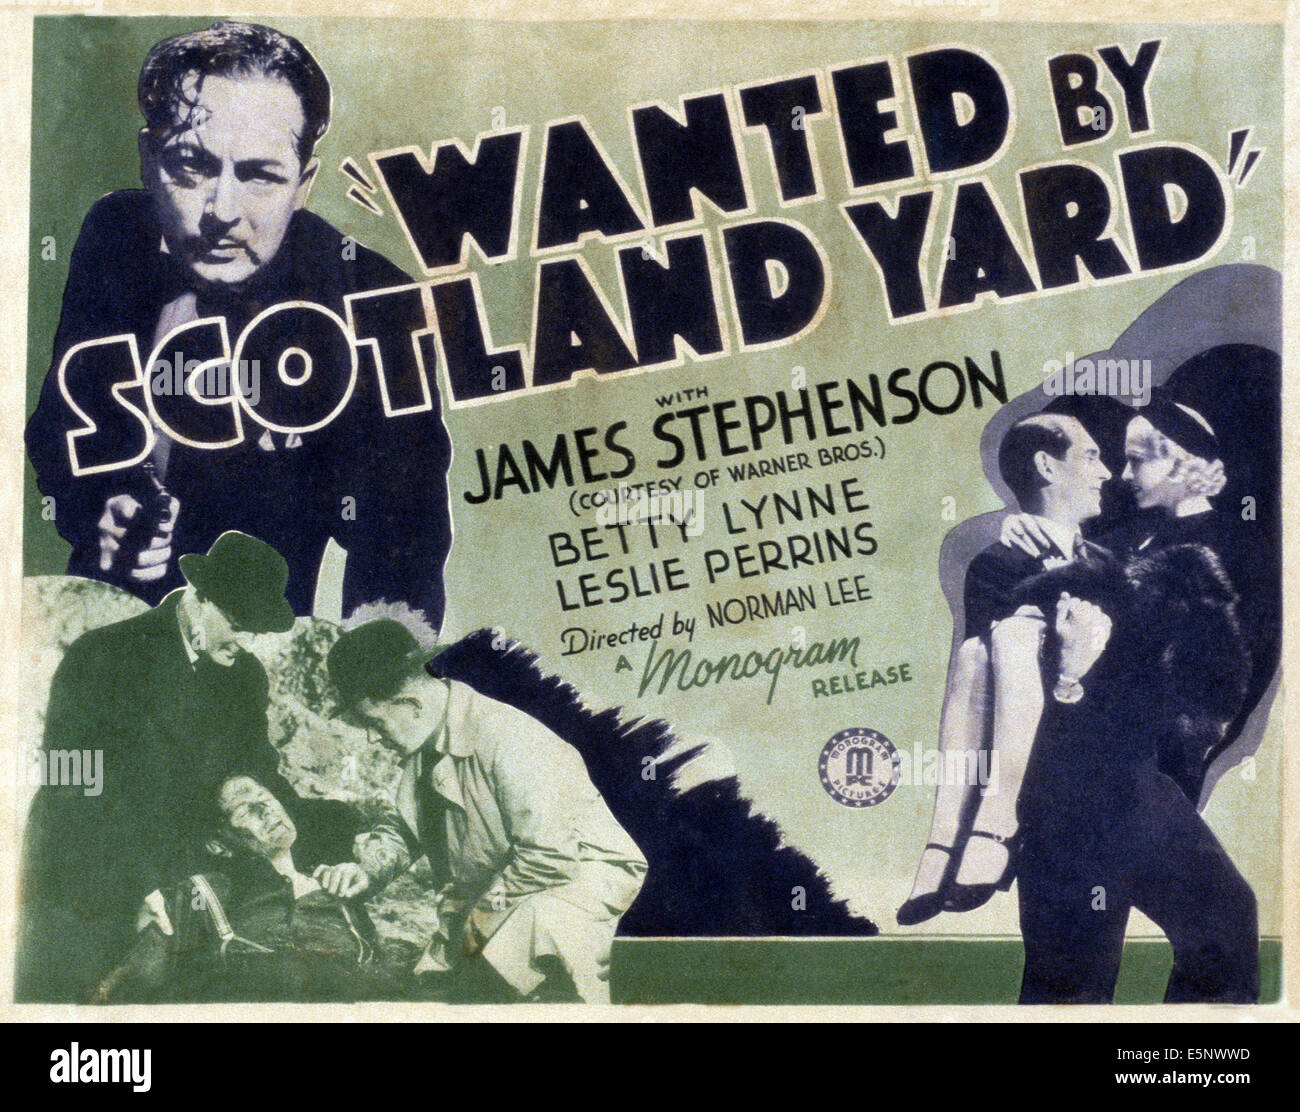 WANTED BY SCOTLAND YARD, US poster, Leslie Perrins (top), bottom right from left: James Stephenson, Betty Lynne, Stock Photo